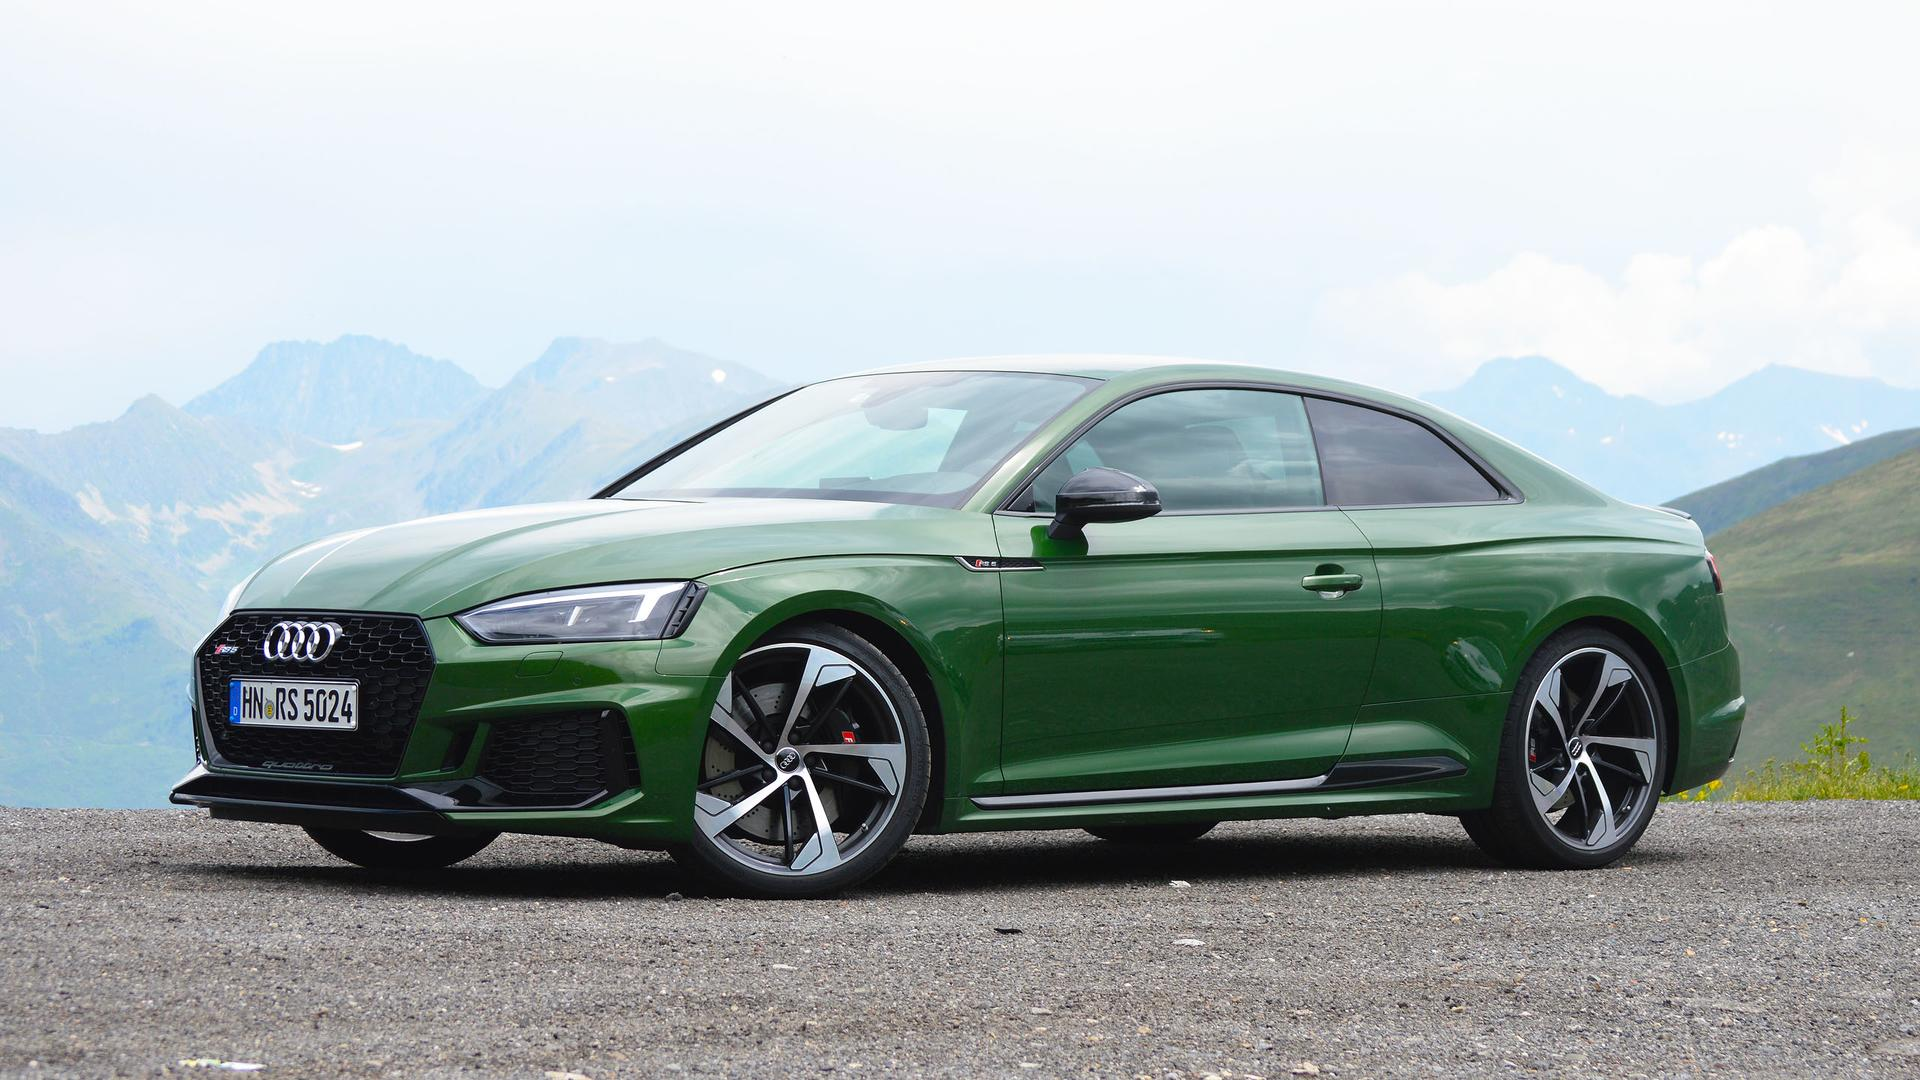 2018 Audi Rs5 Coupe First Drive Review Car And Driver